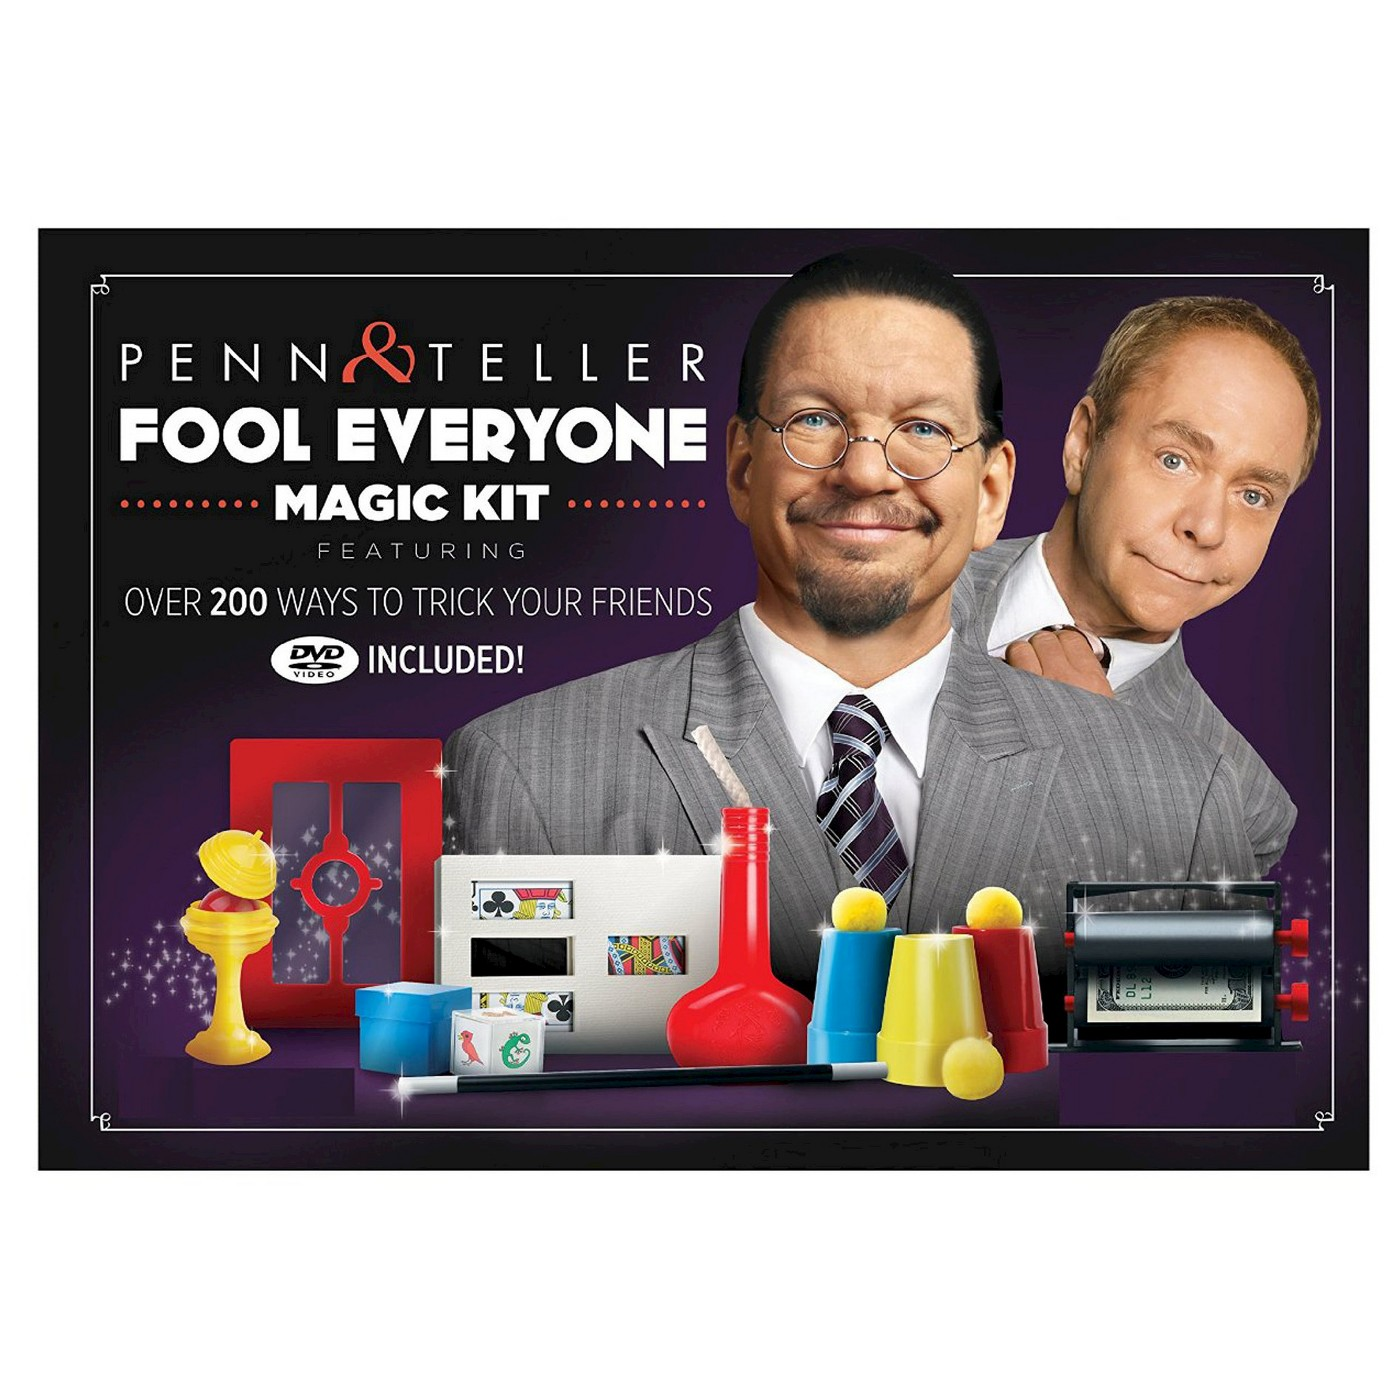 Cool gifts for tween boys (and girls): Penn and Teller Fool Everyone Magic Kit